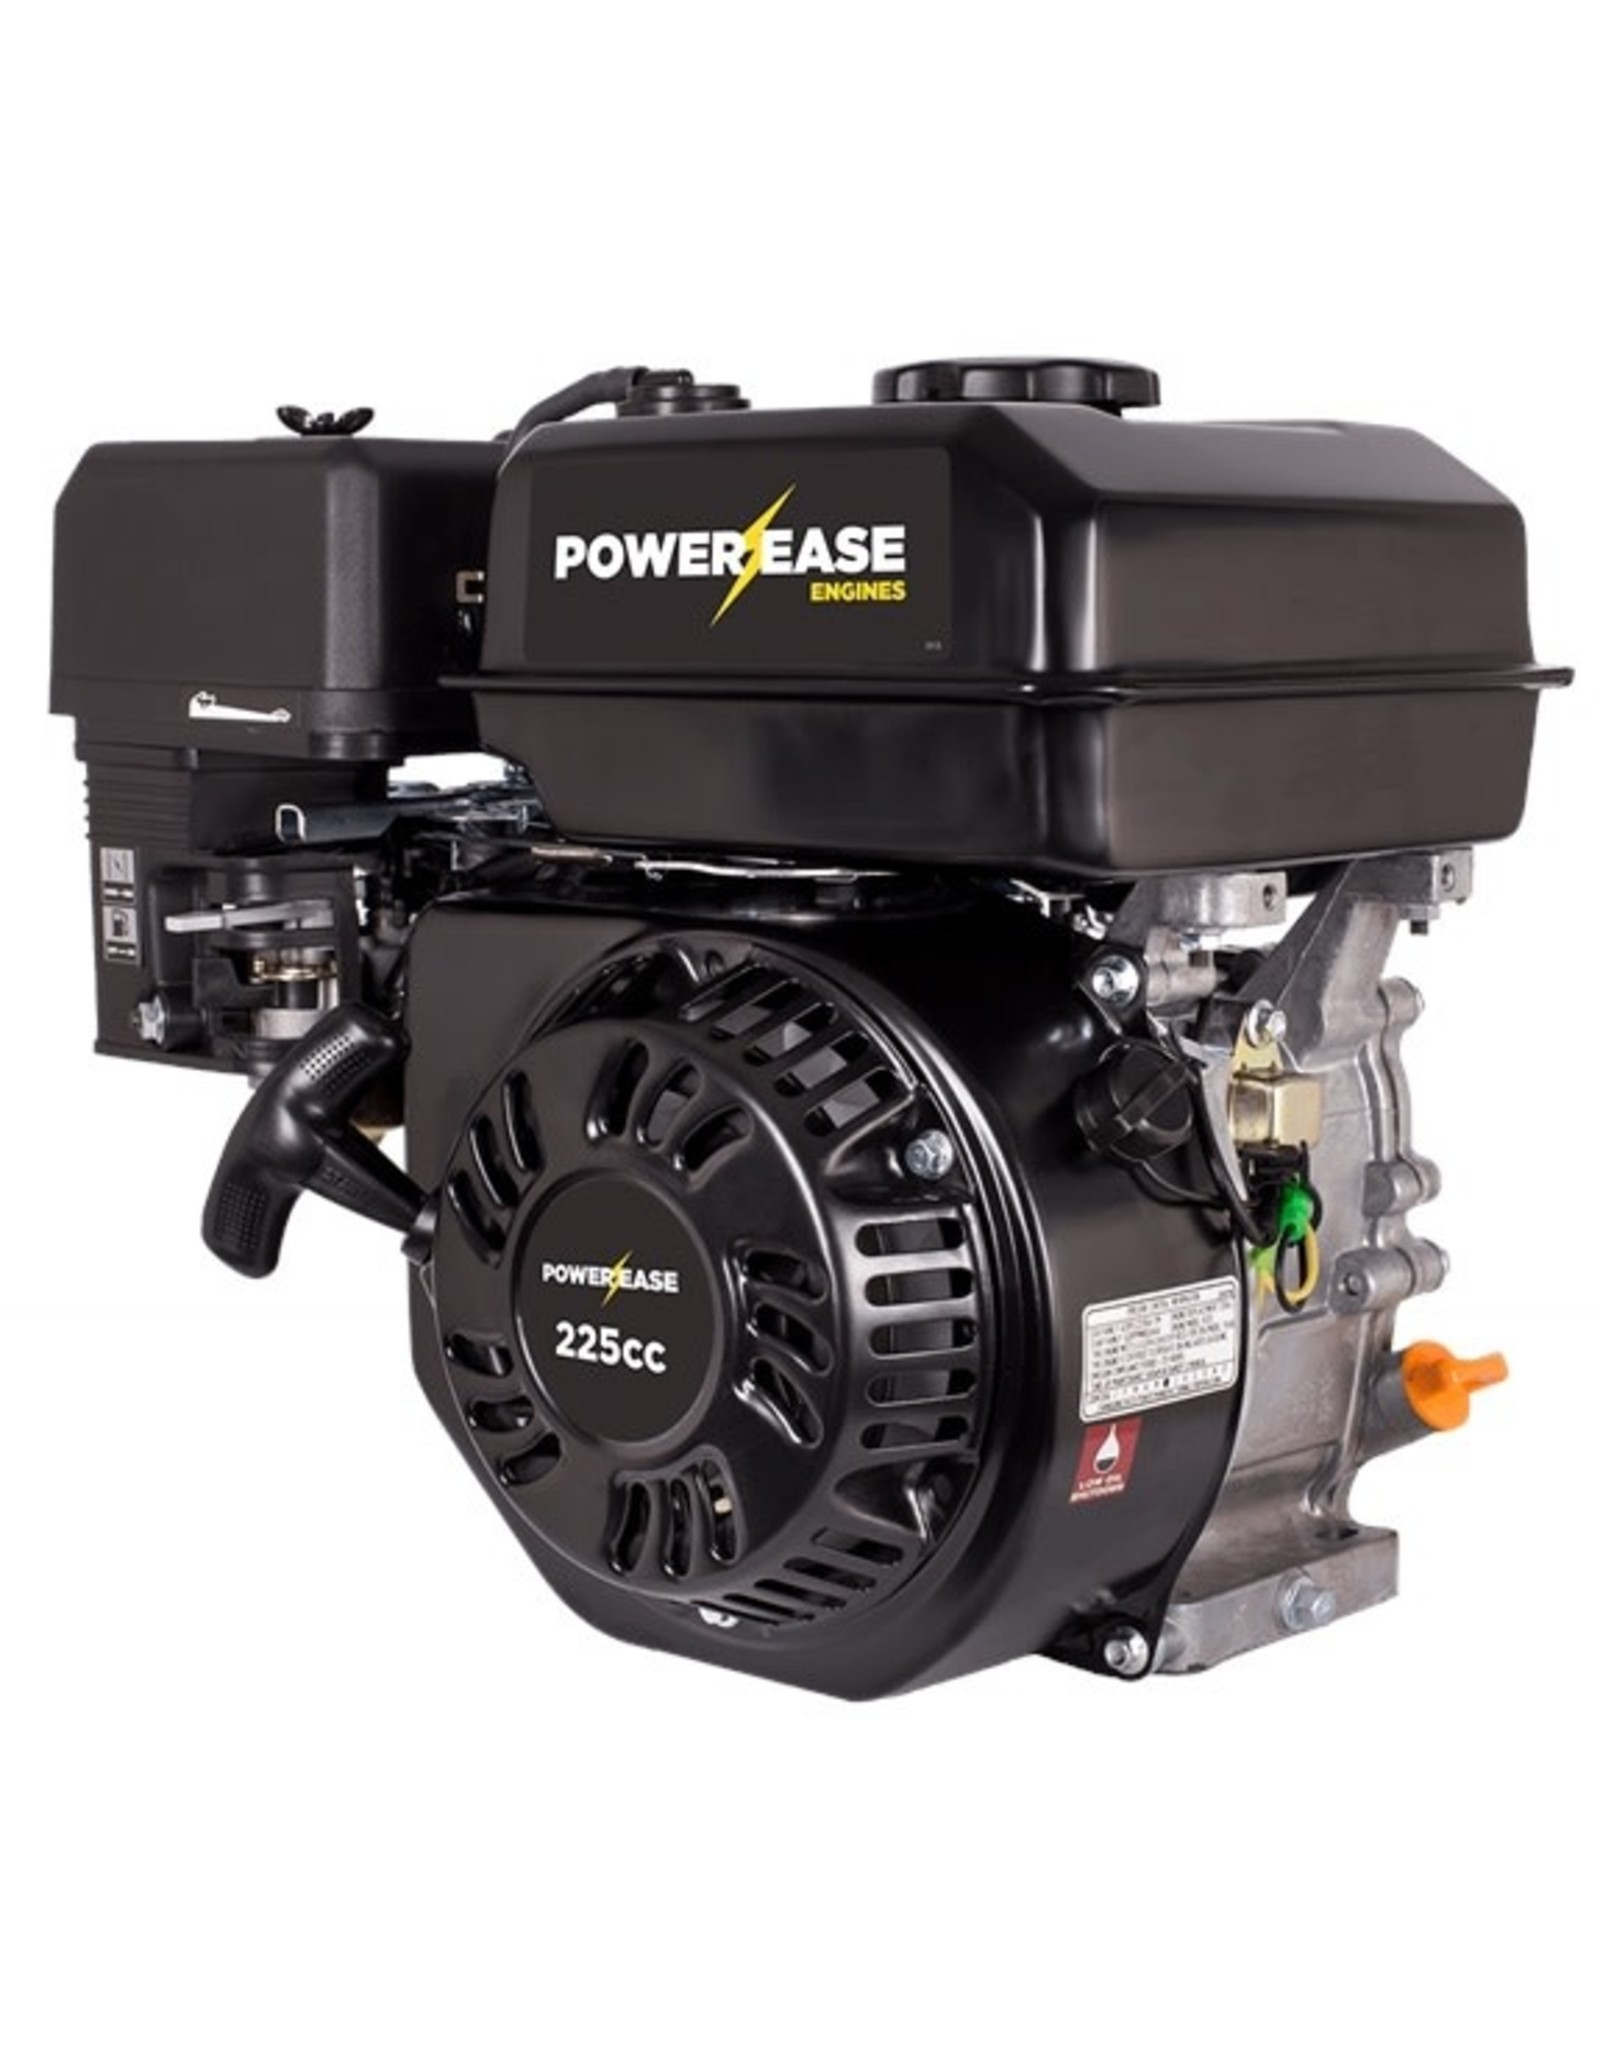 BE 85.570.070  225cc Powerease Engine